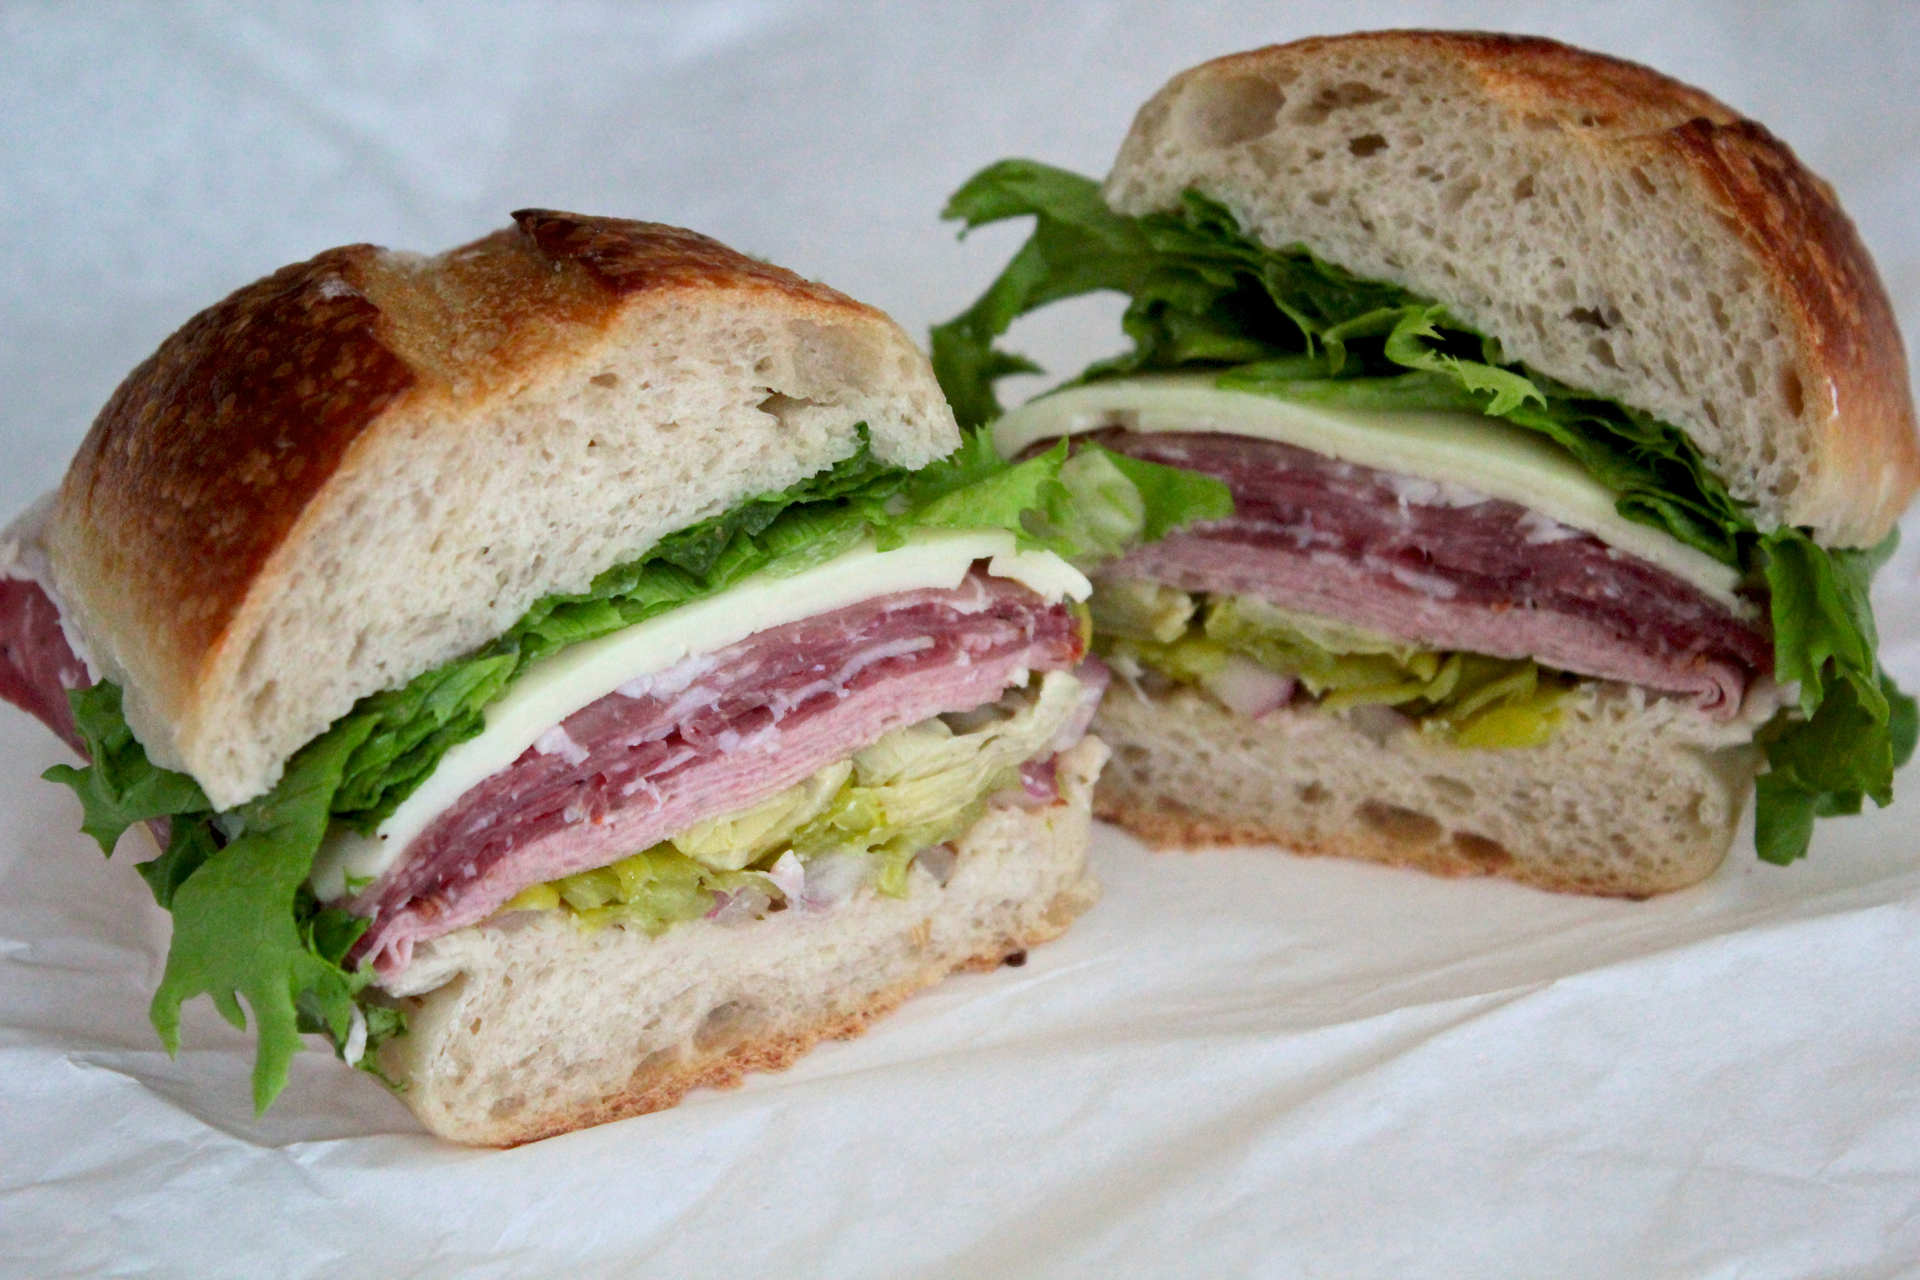 The Godfather sandwich features salami, coppa, prosciutto, mortadella, artichoke hearts and pepperoncinis.